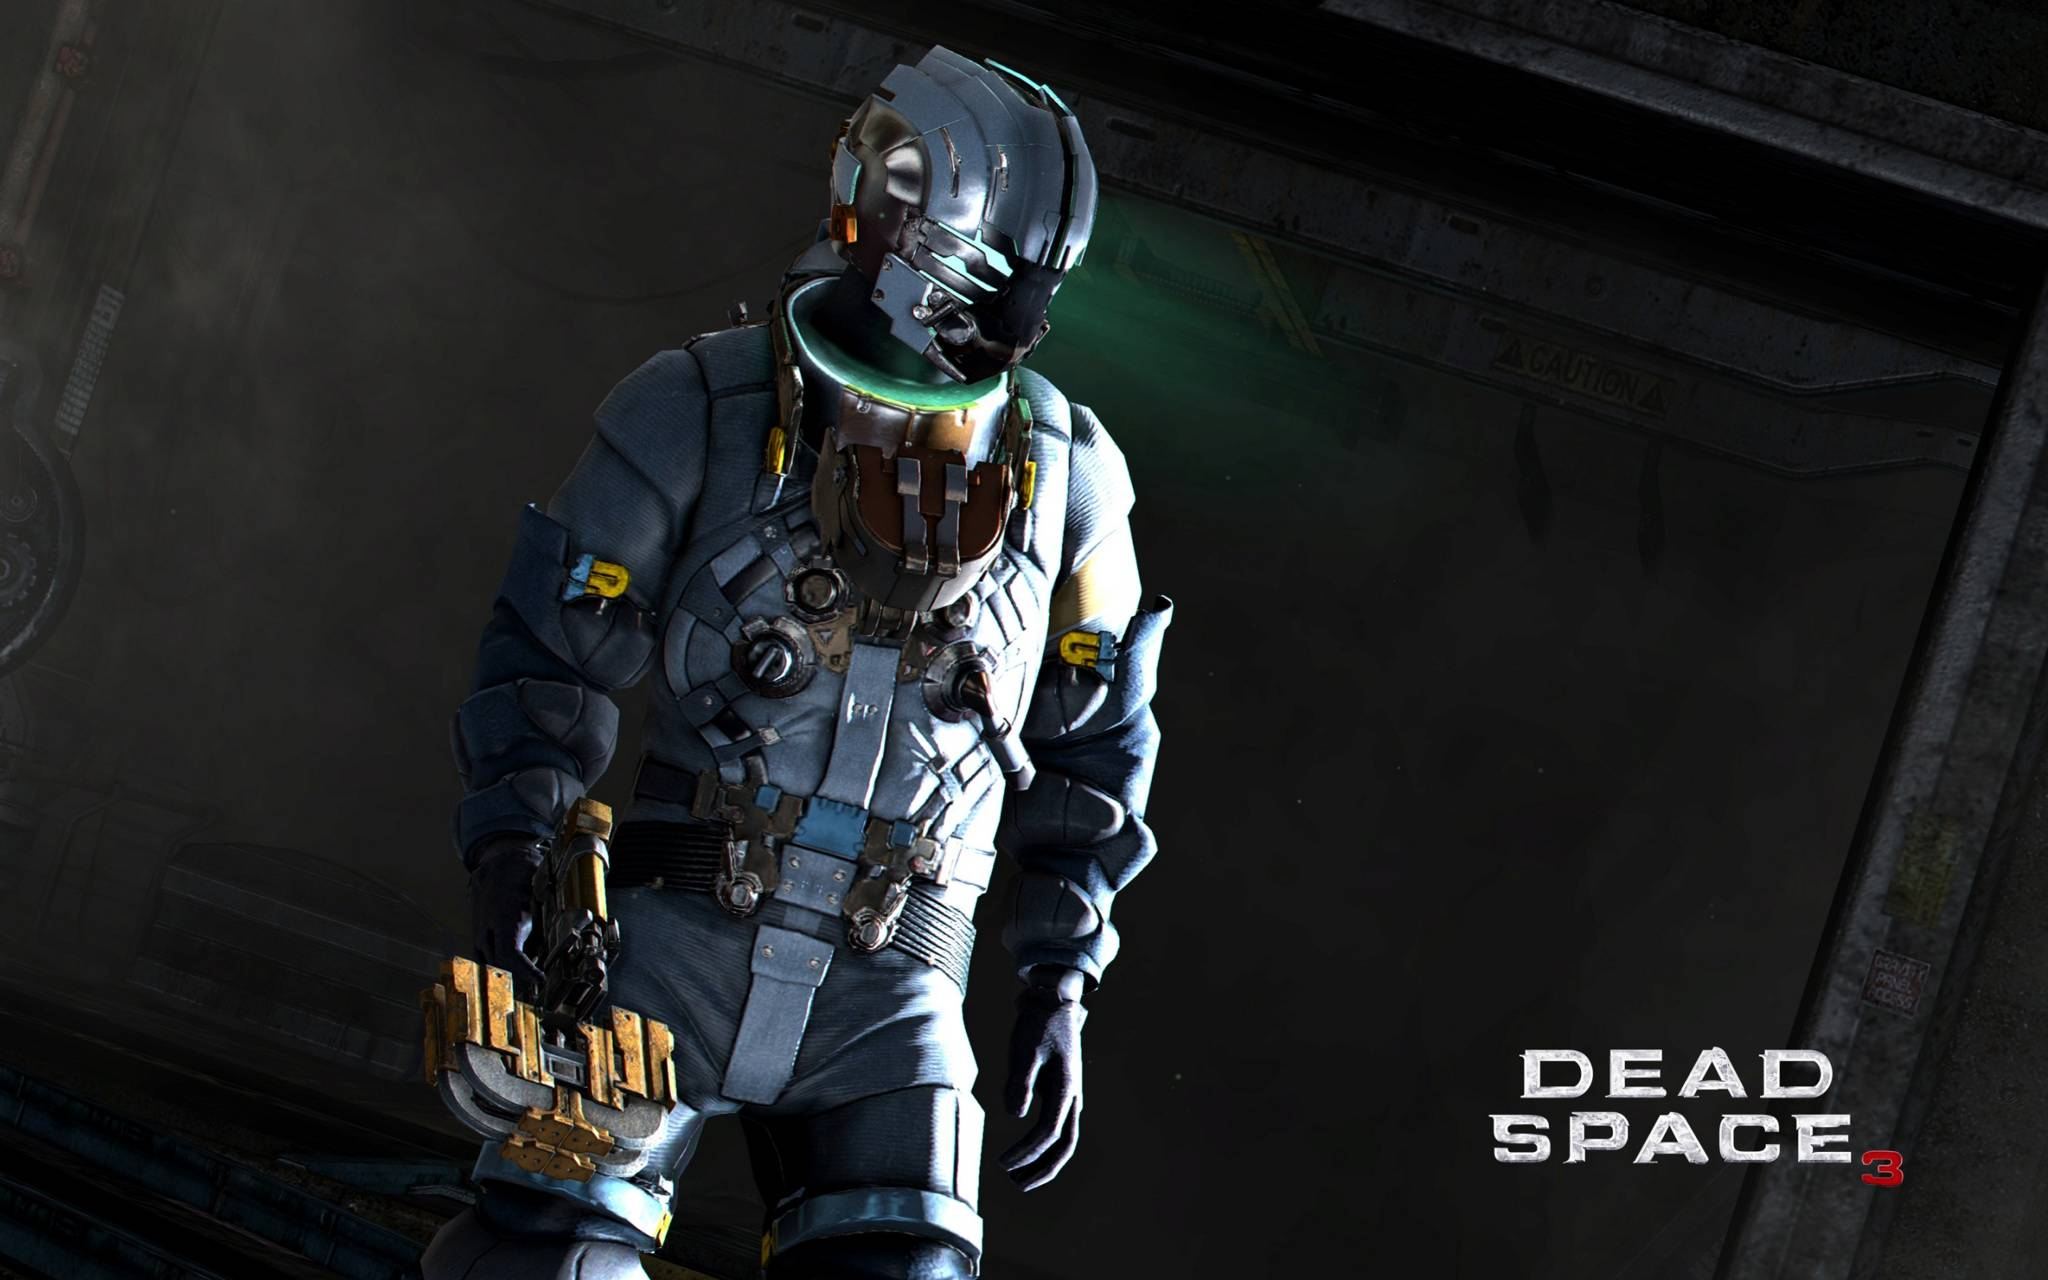 Dead Space 3 2013